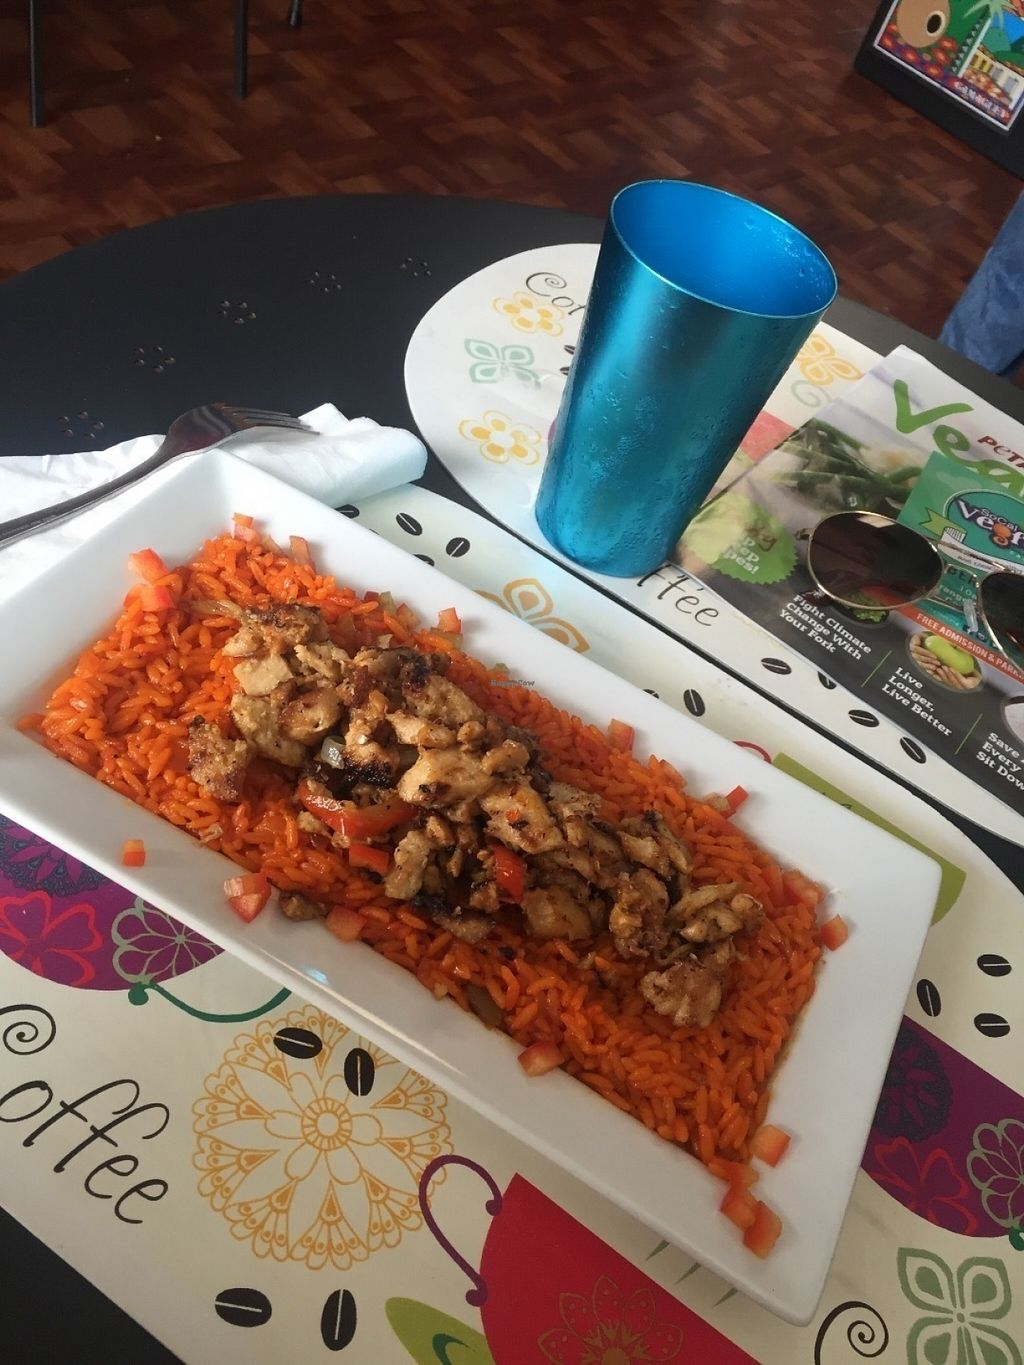 """Photo of Equelecua Cuban Cafe  by <a href=""""/members/profile/MissCindyPants"""">MissCindyPants</a> <br/>Arroz con Pollo! perfection, a blast of flavor! <br/> July 25, 2016  - <a href='/contact/abuse/image/59617/162301'>Report</a>"""